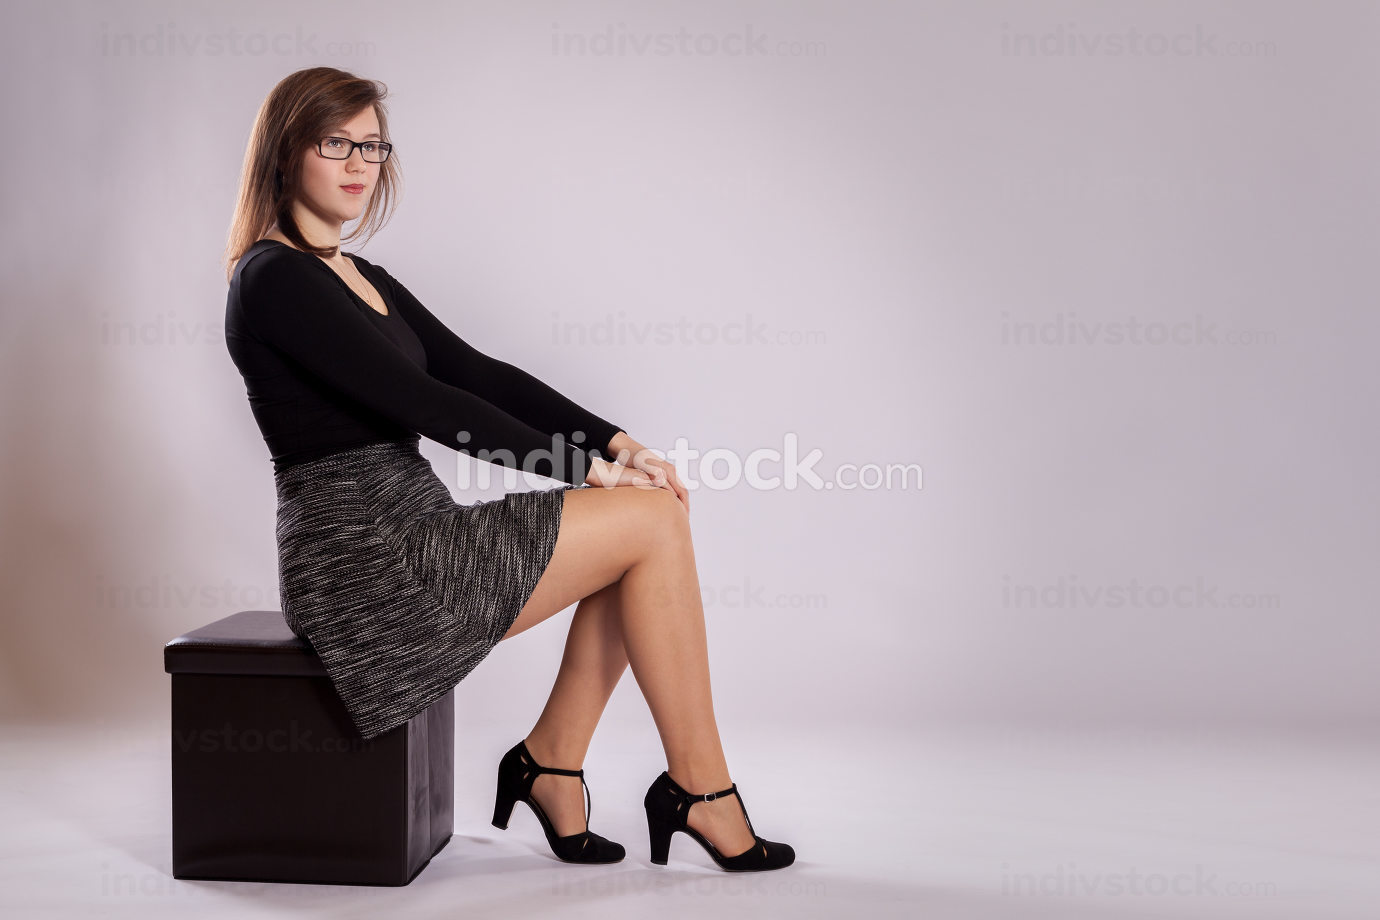 A young girl is sitting on a stool